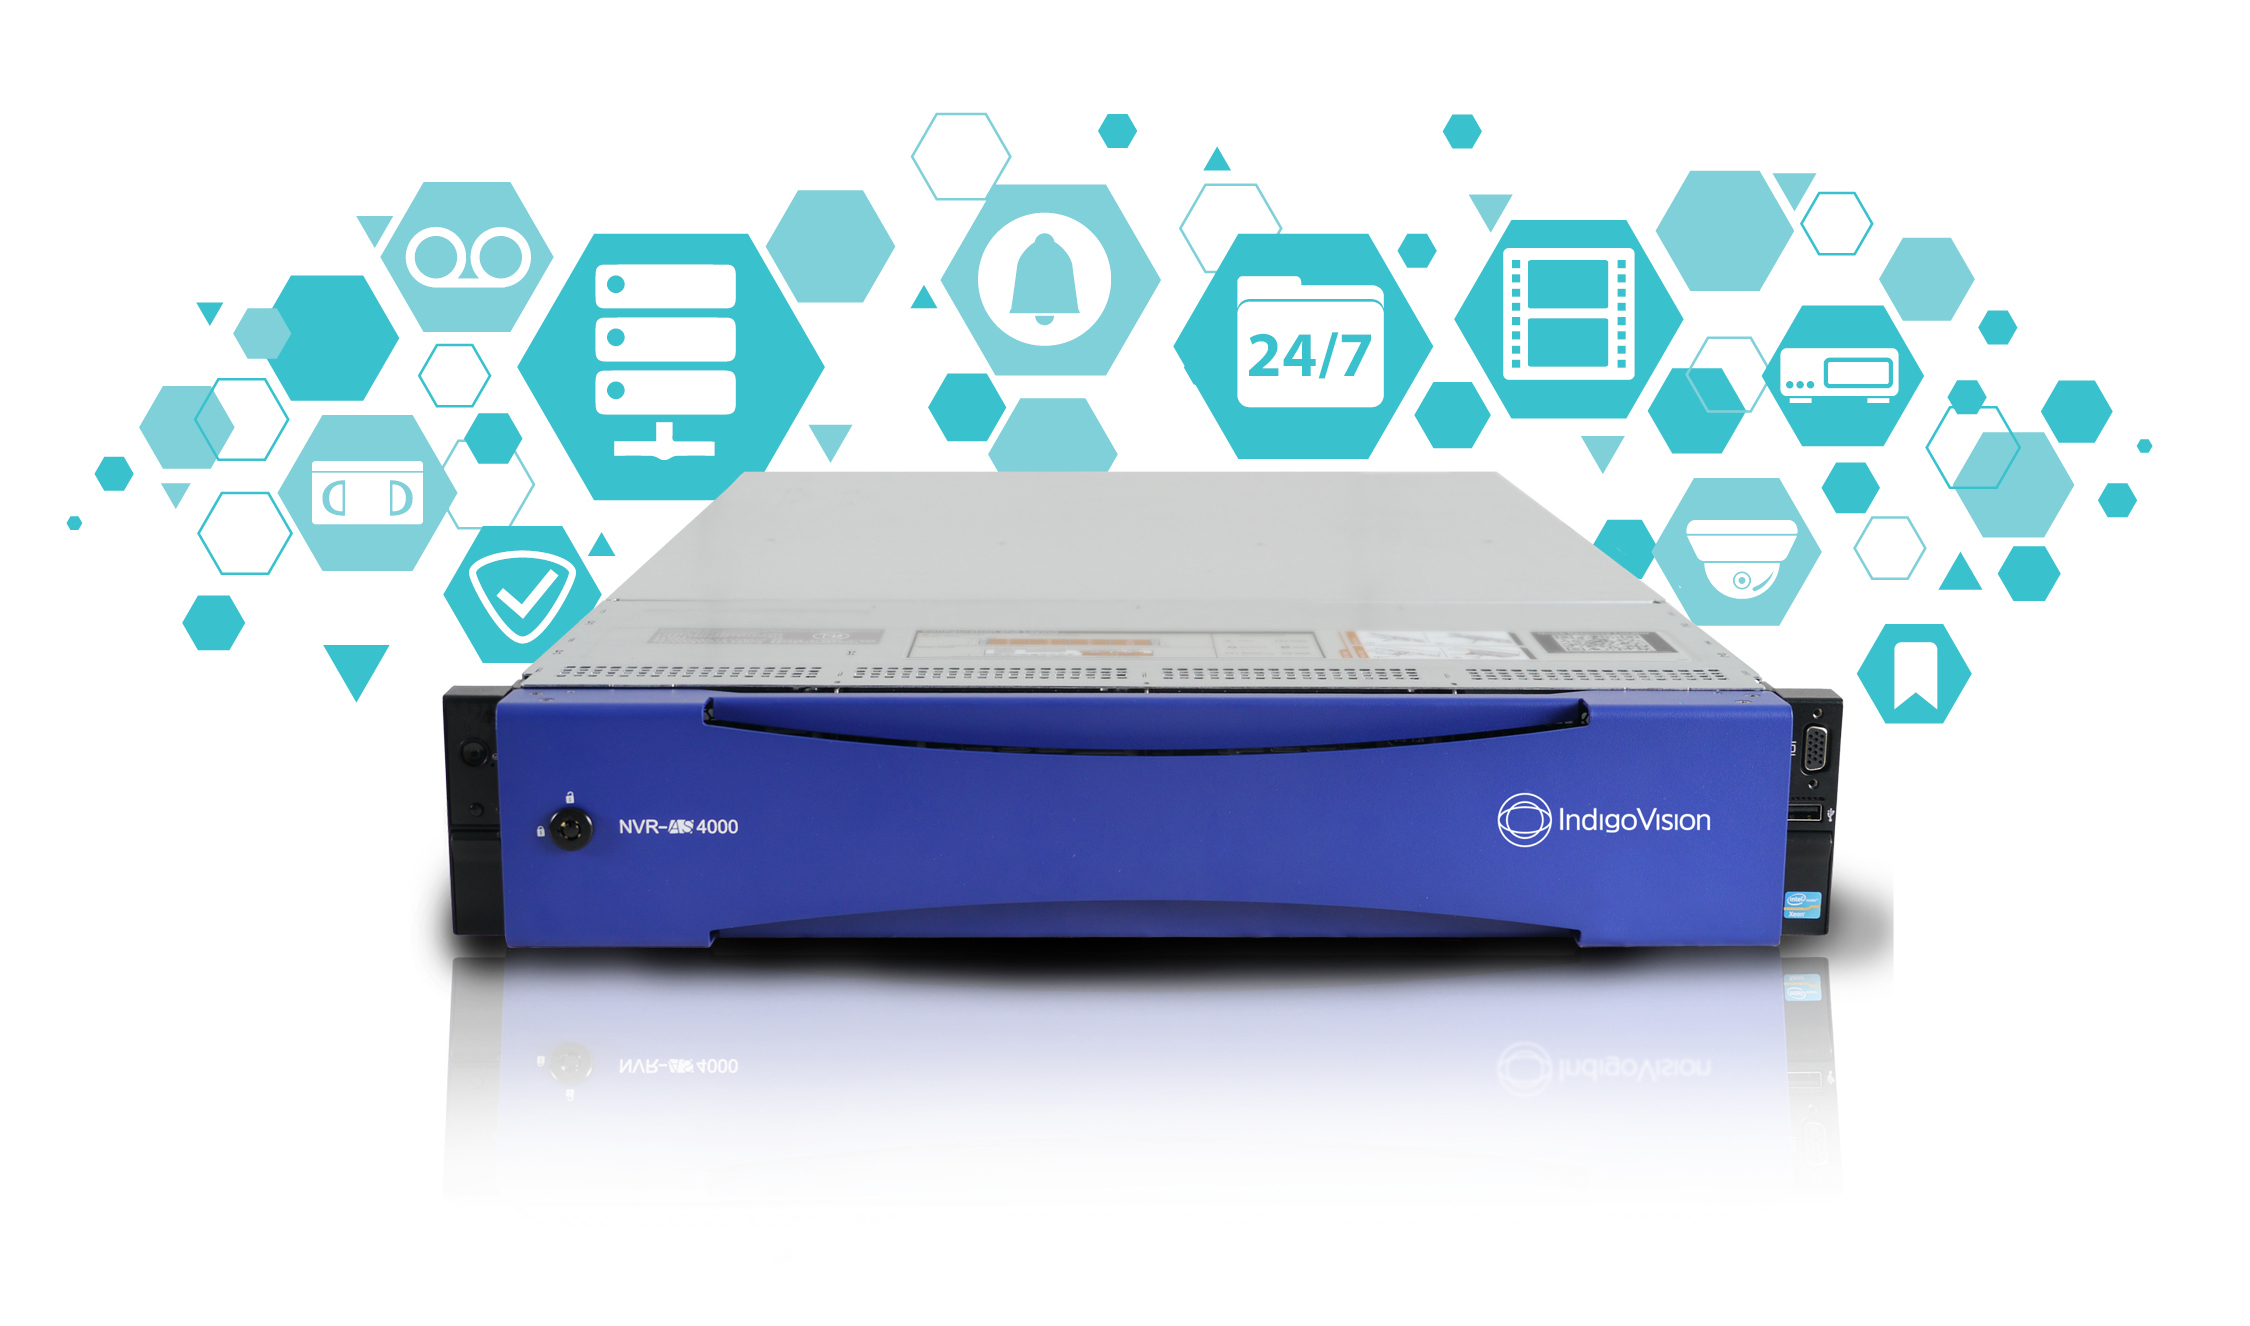 IndigoVision's Large Enterprise NVR-AS 4000 can now record up to 800 cameras!